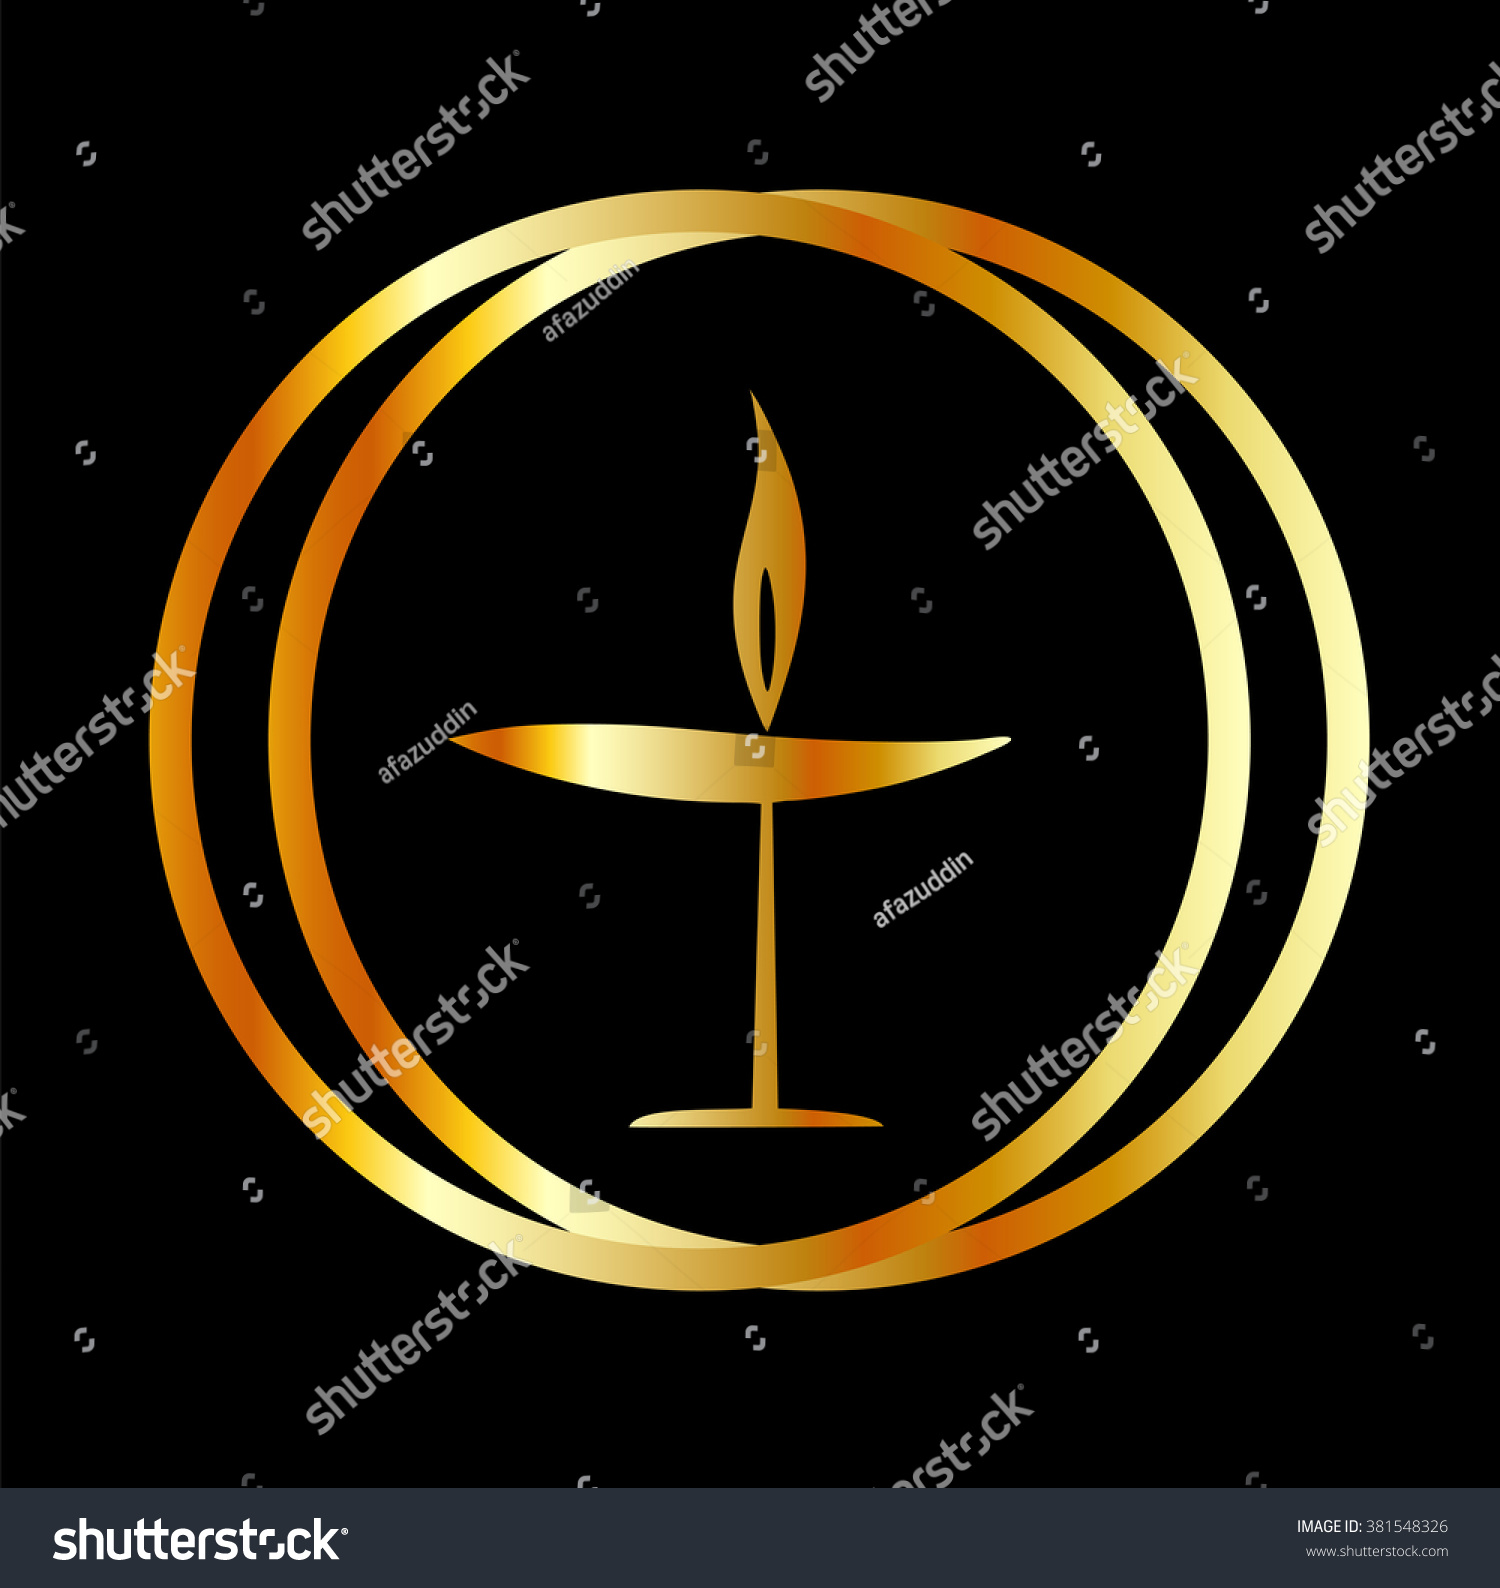 Our Symbol The Flaming Chalice: Flaming Chalice Symbol Unitarianism Unitarian Universalism